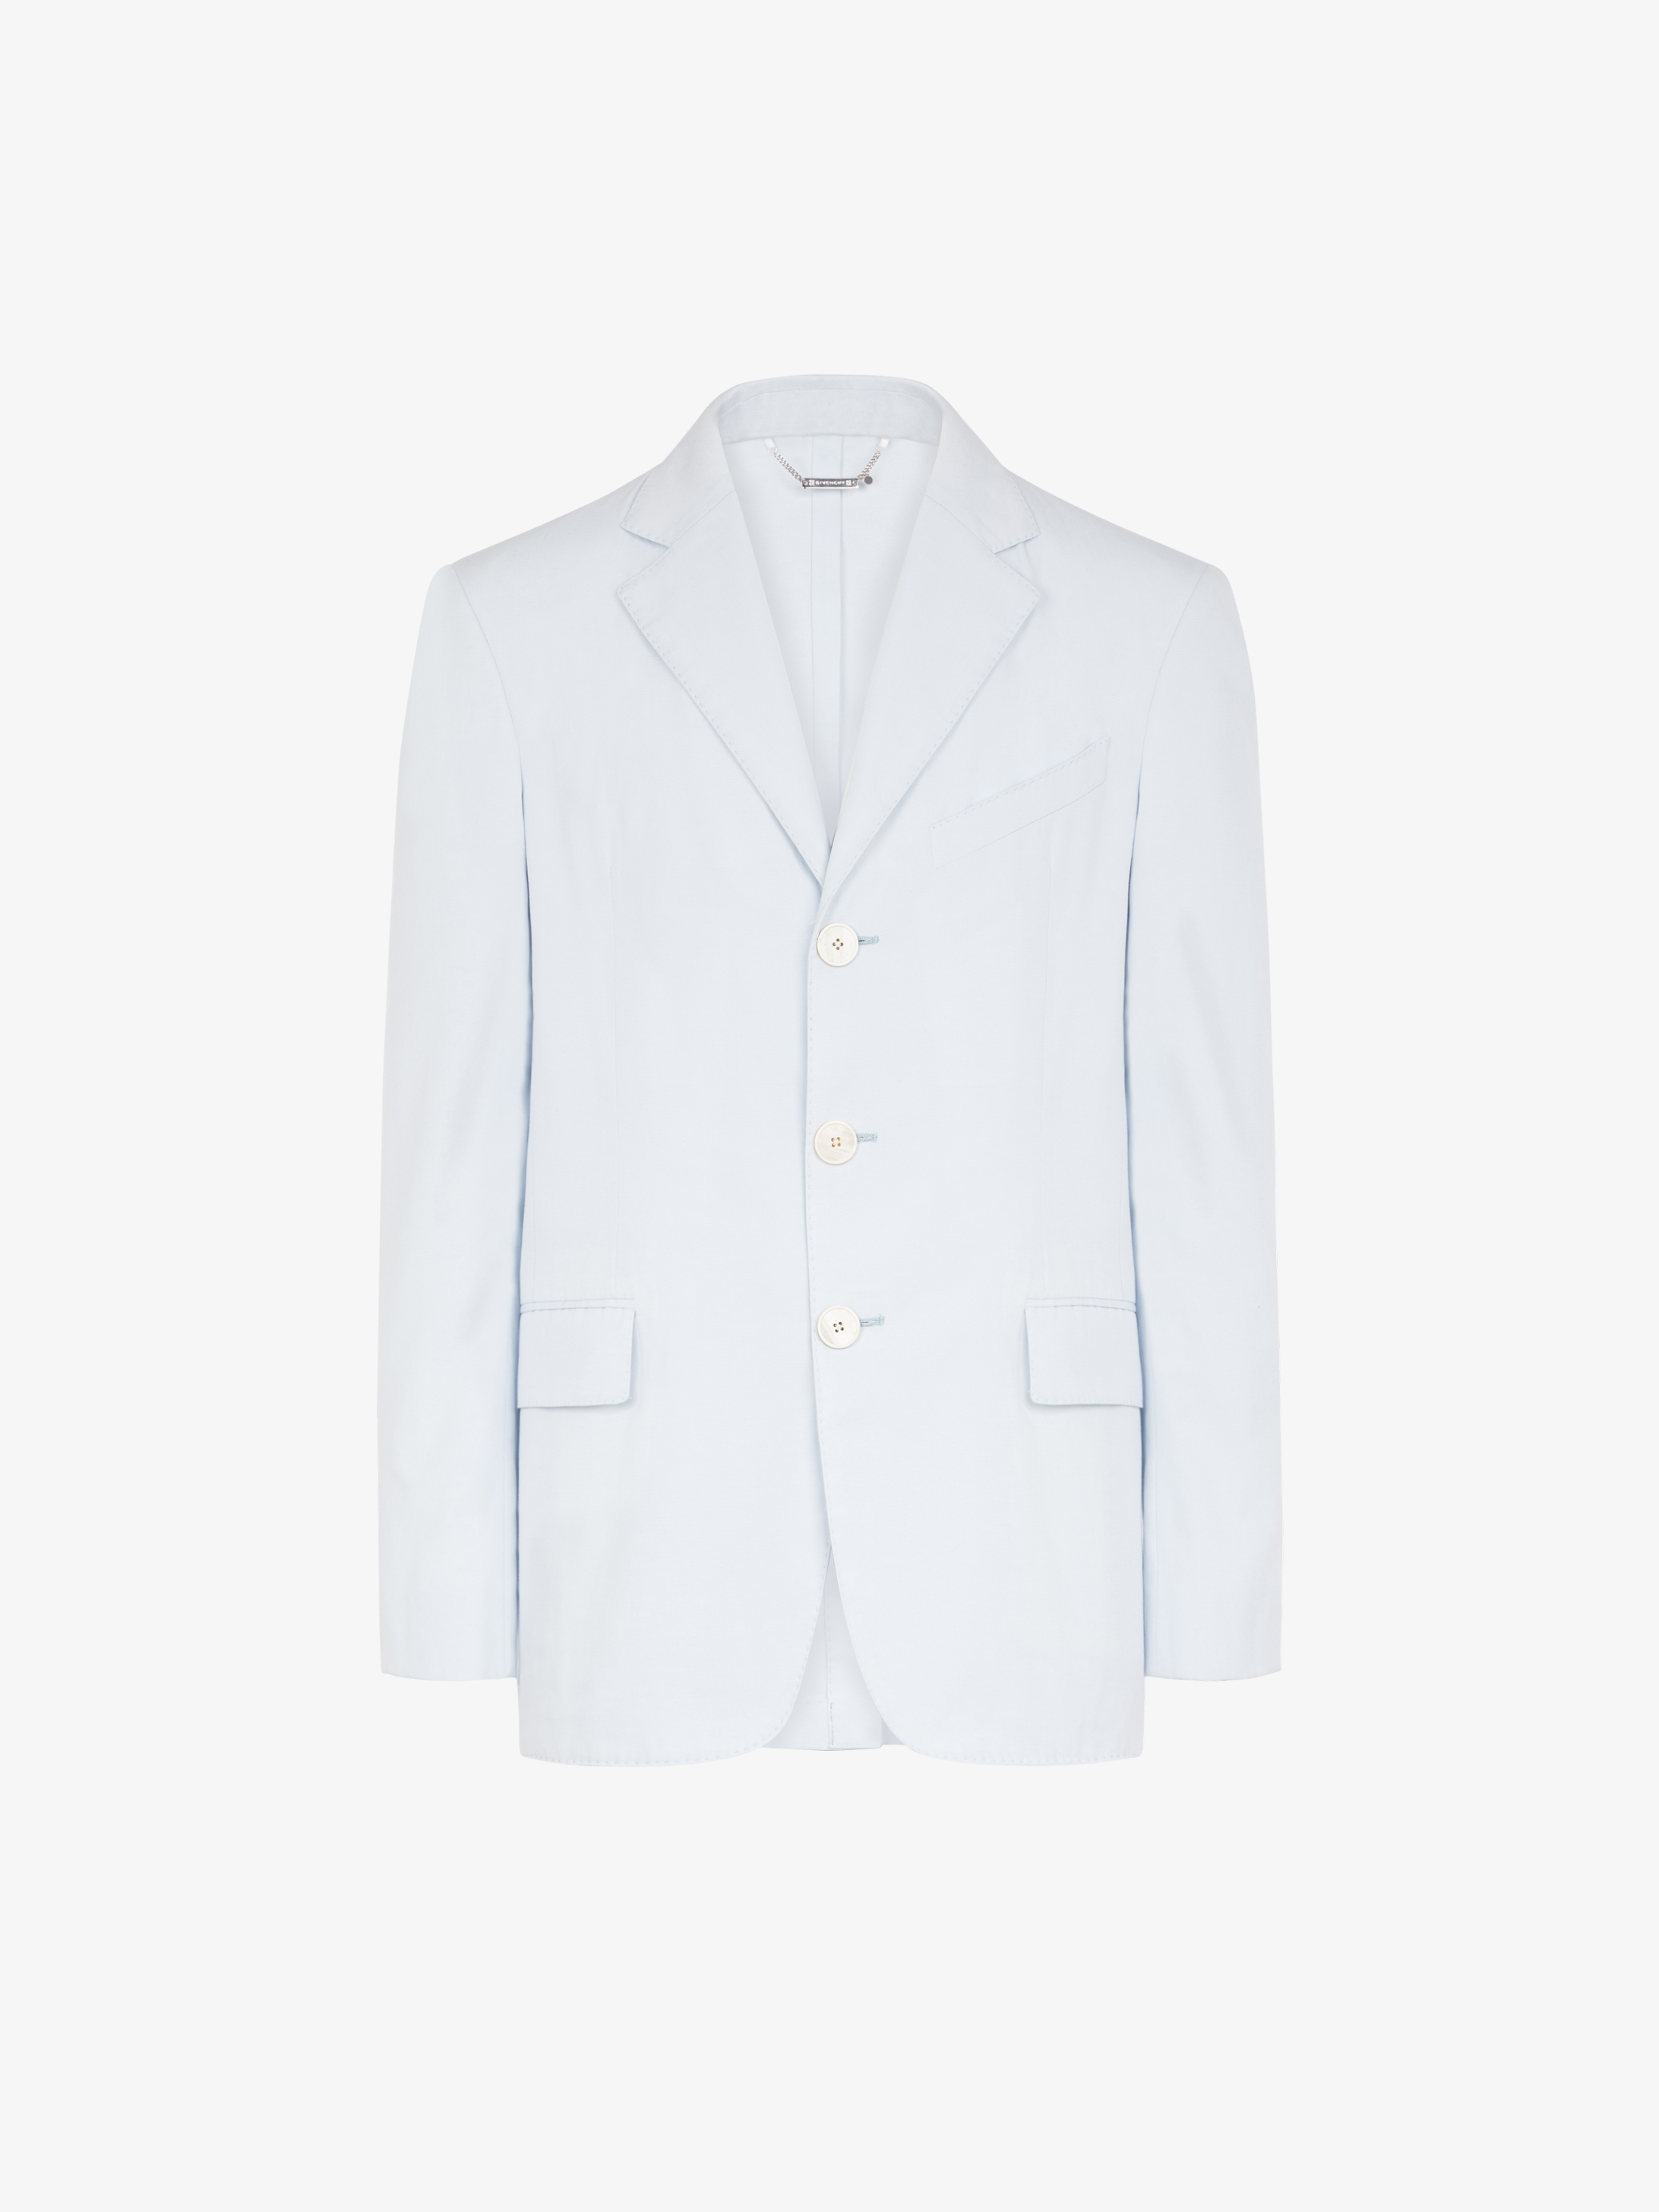 Jacket in faille de coton